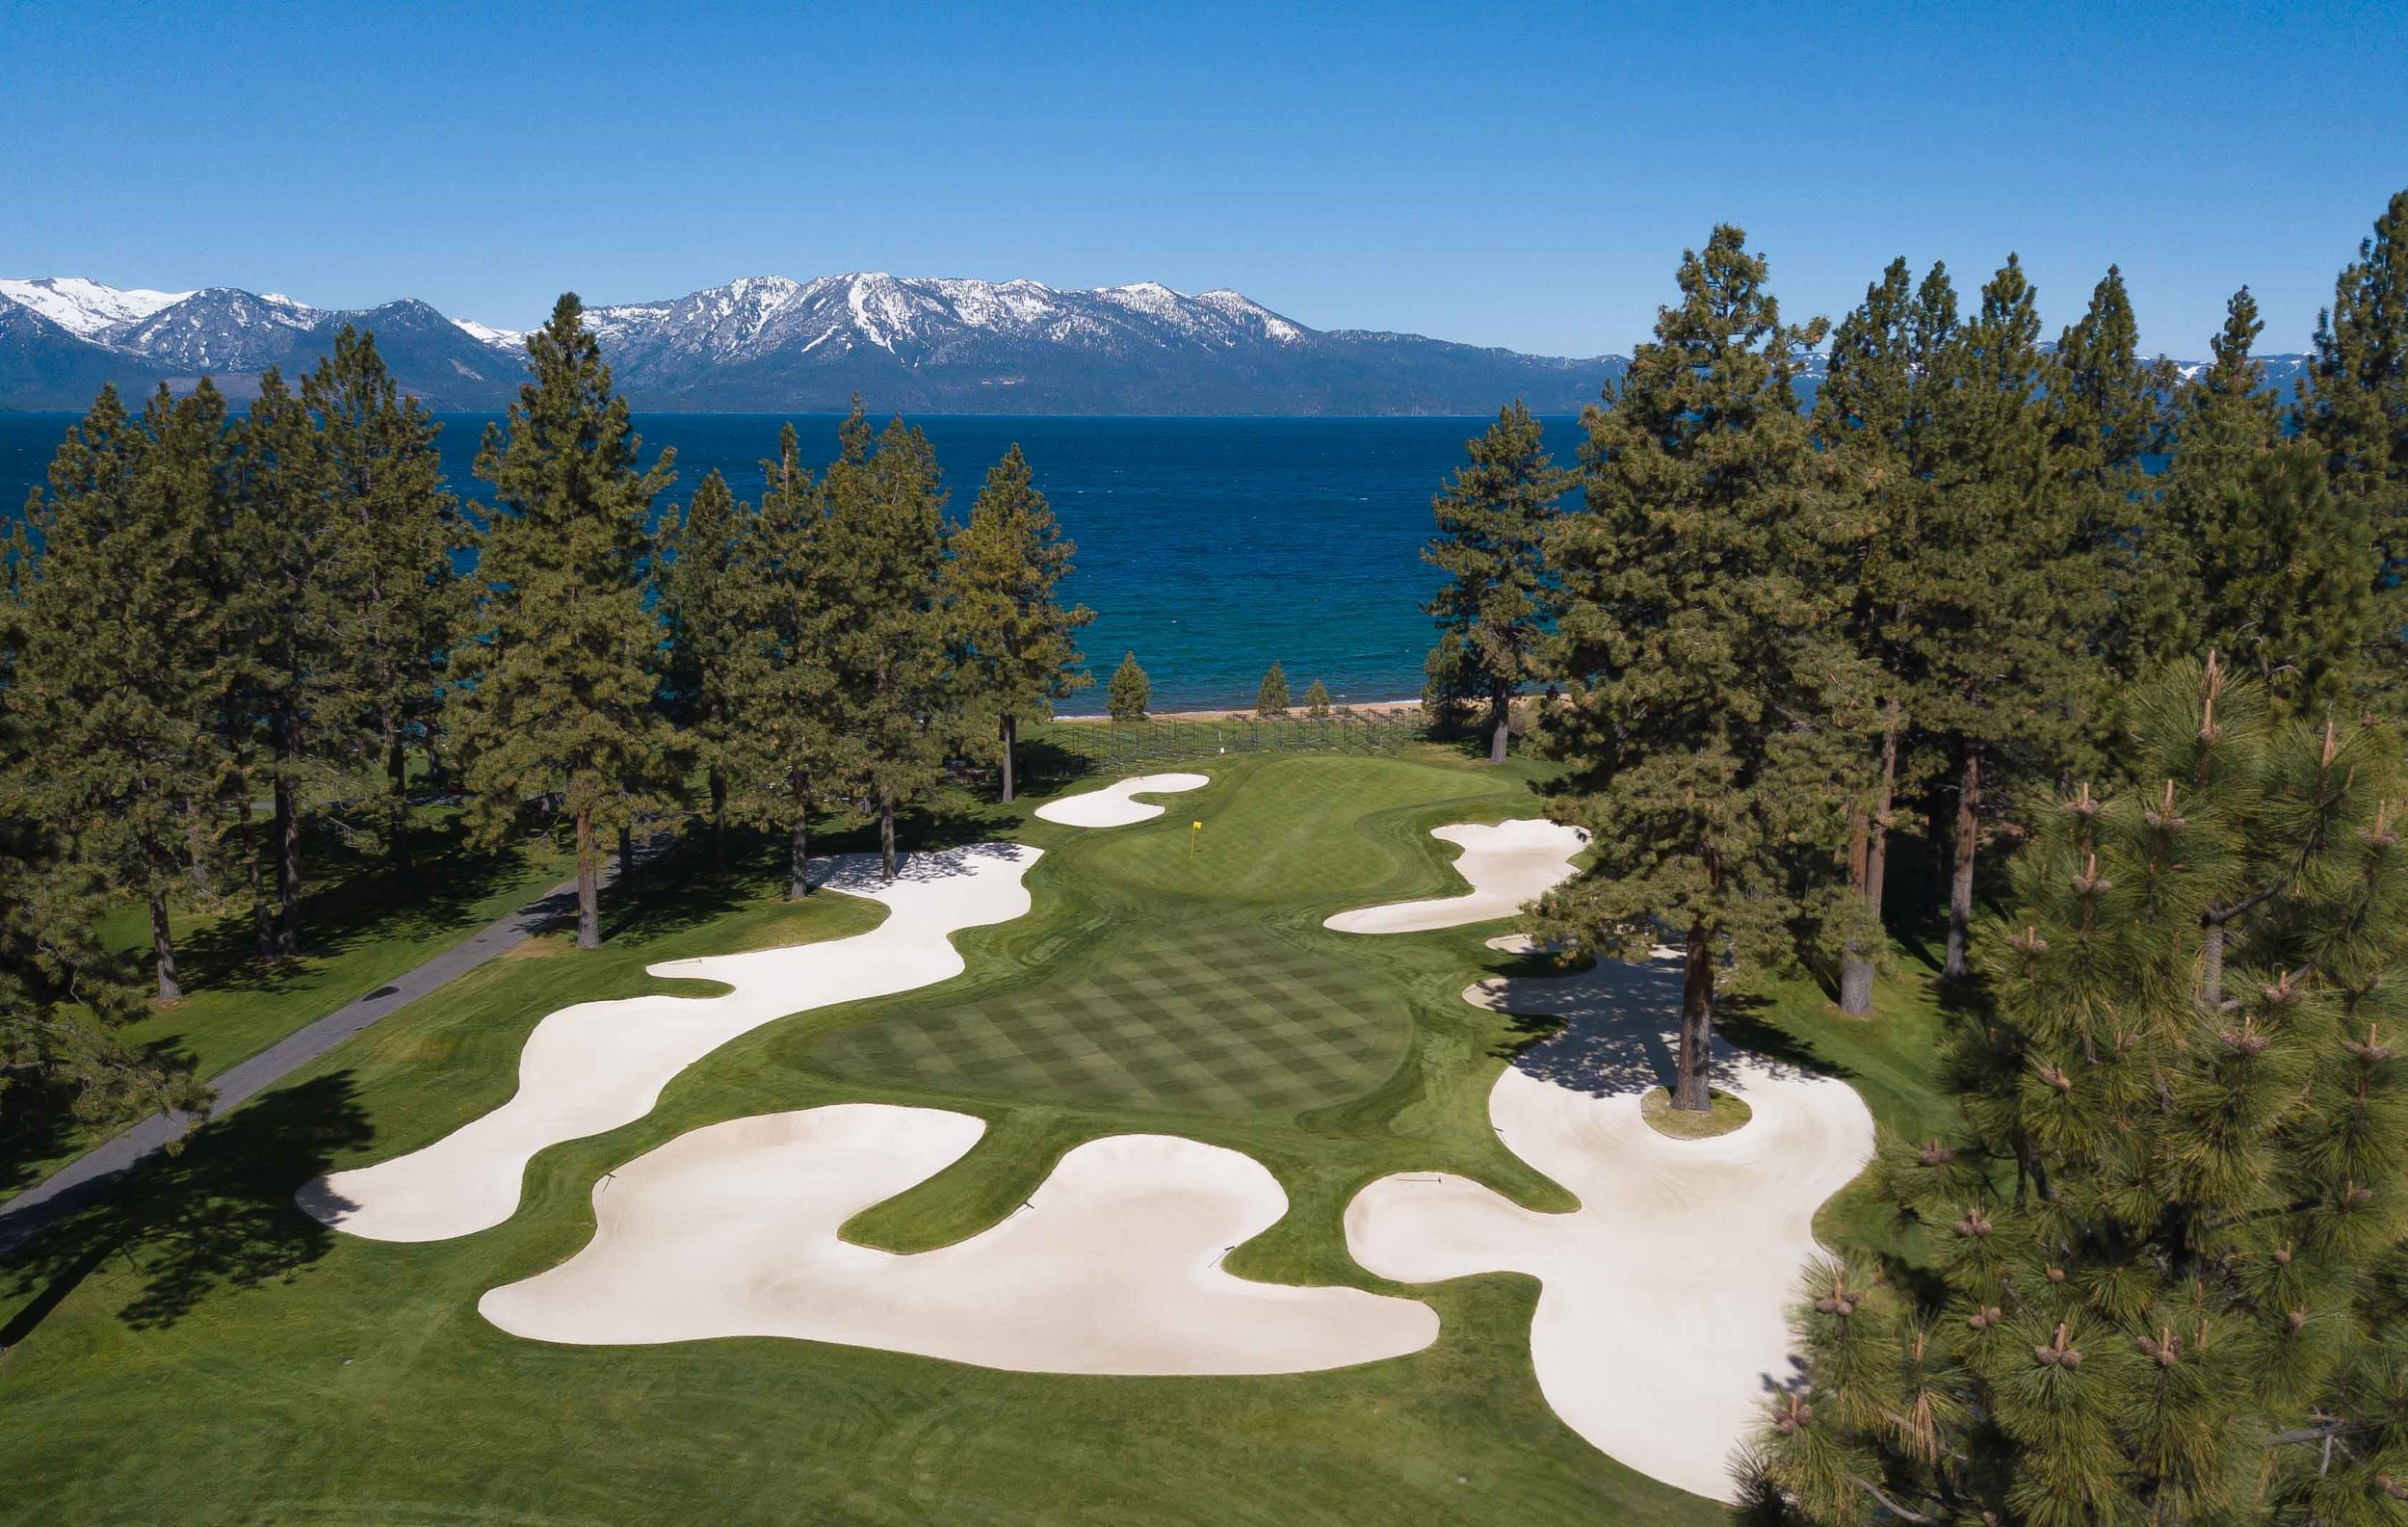 The 16th hole at Edgewood Tahoe